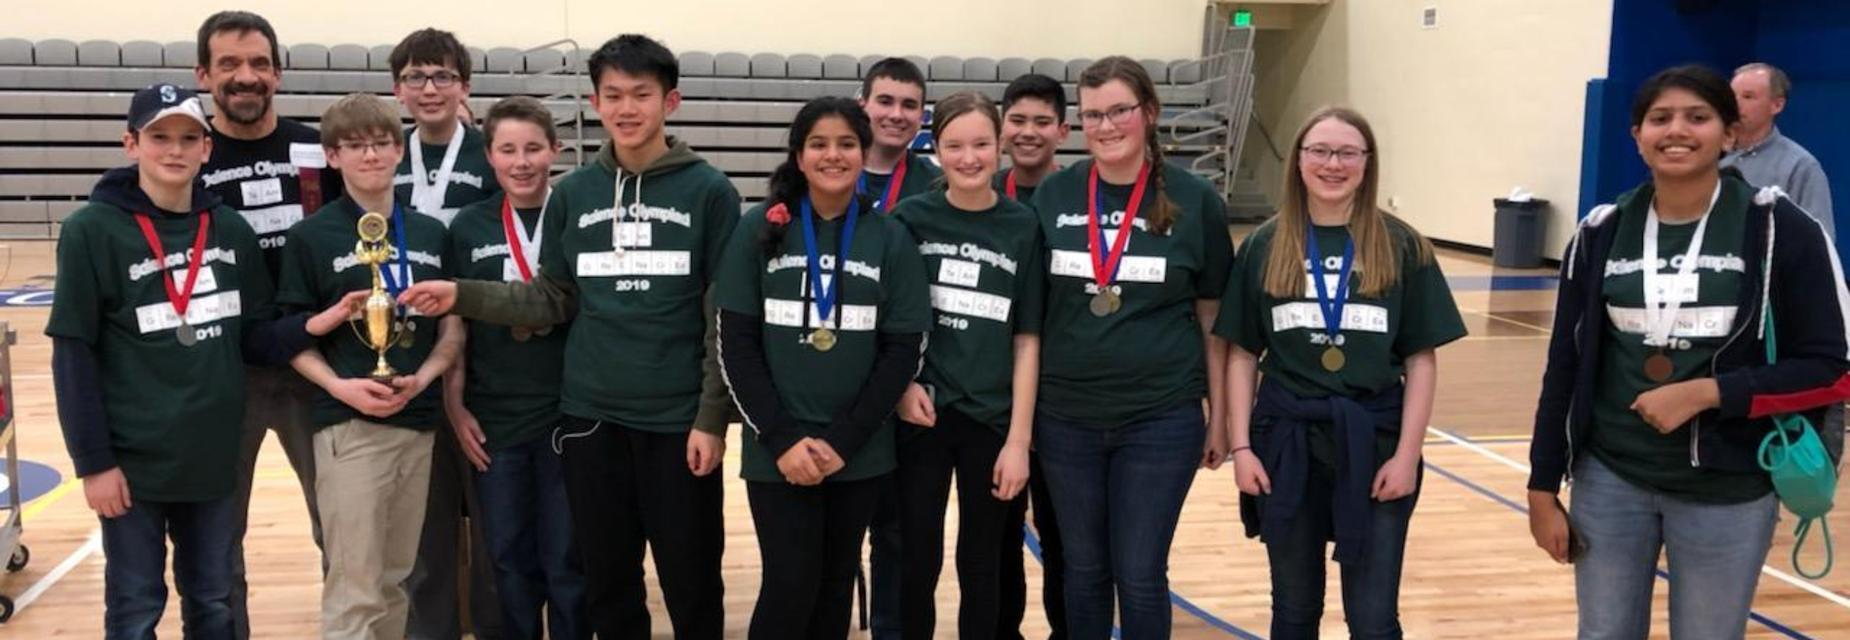 Science Olympiad team earns 3rd place win at Regionals